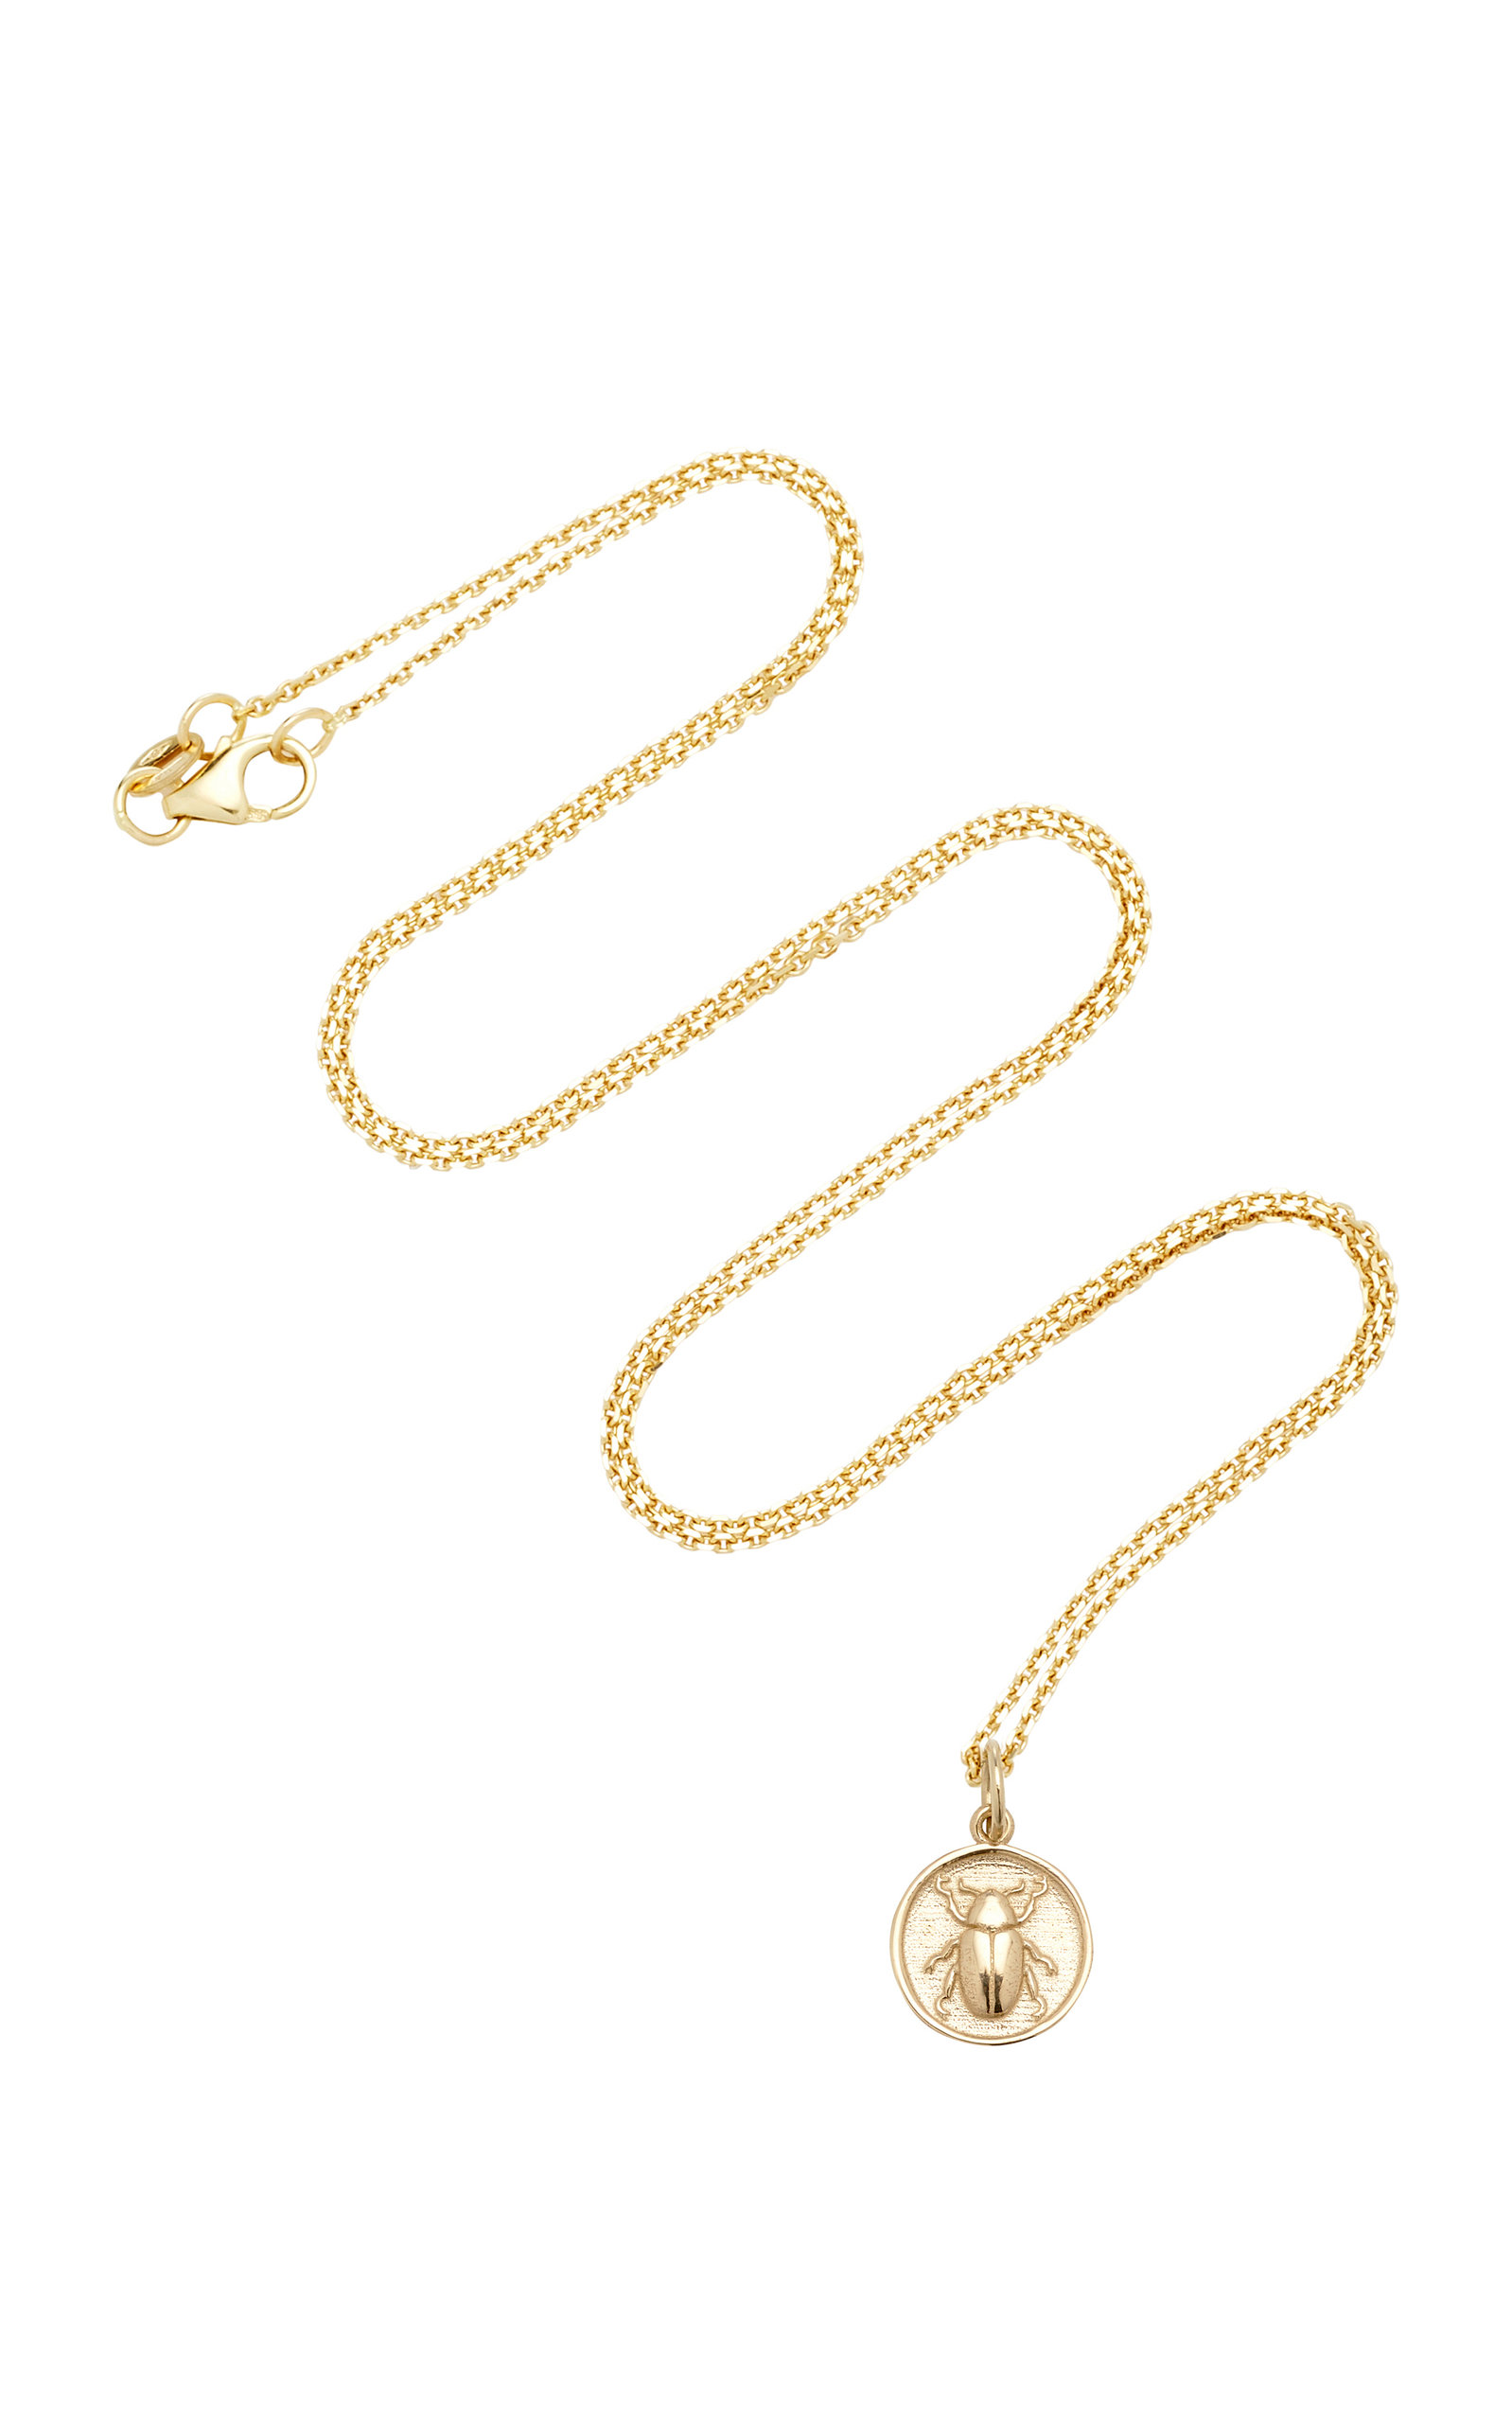 WITH LOVE DARLING BEETLE TOTEM 14K GOLD NECKLACE